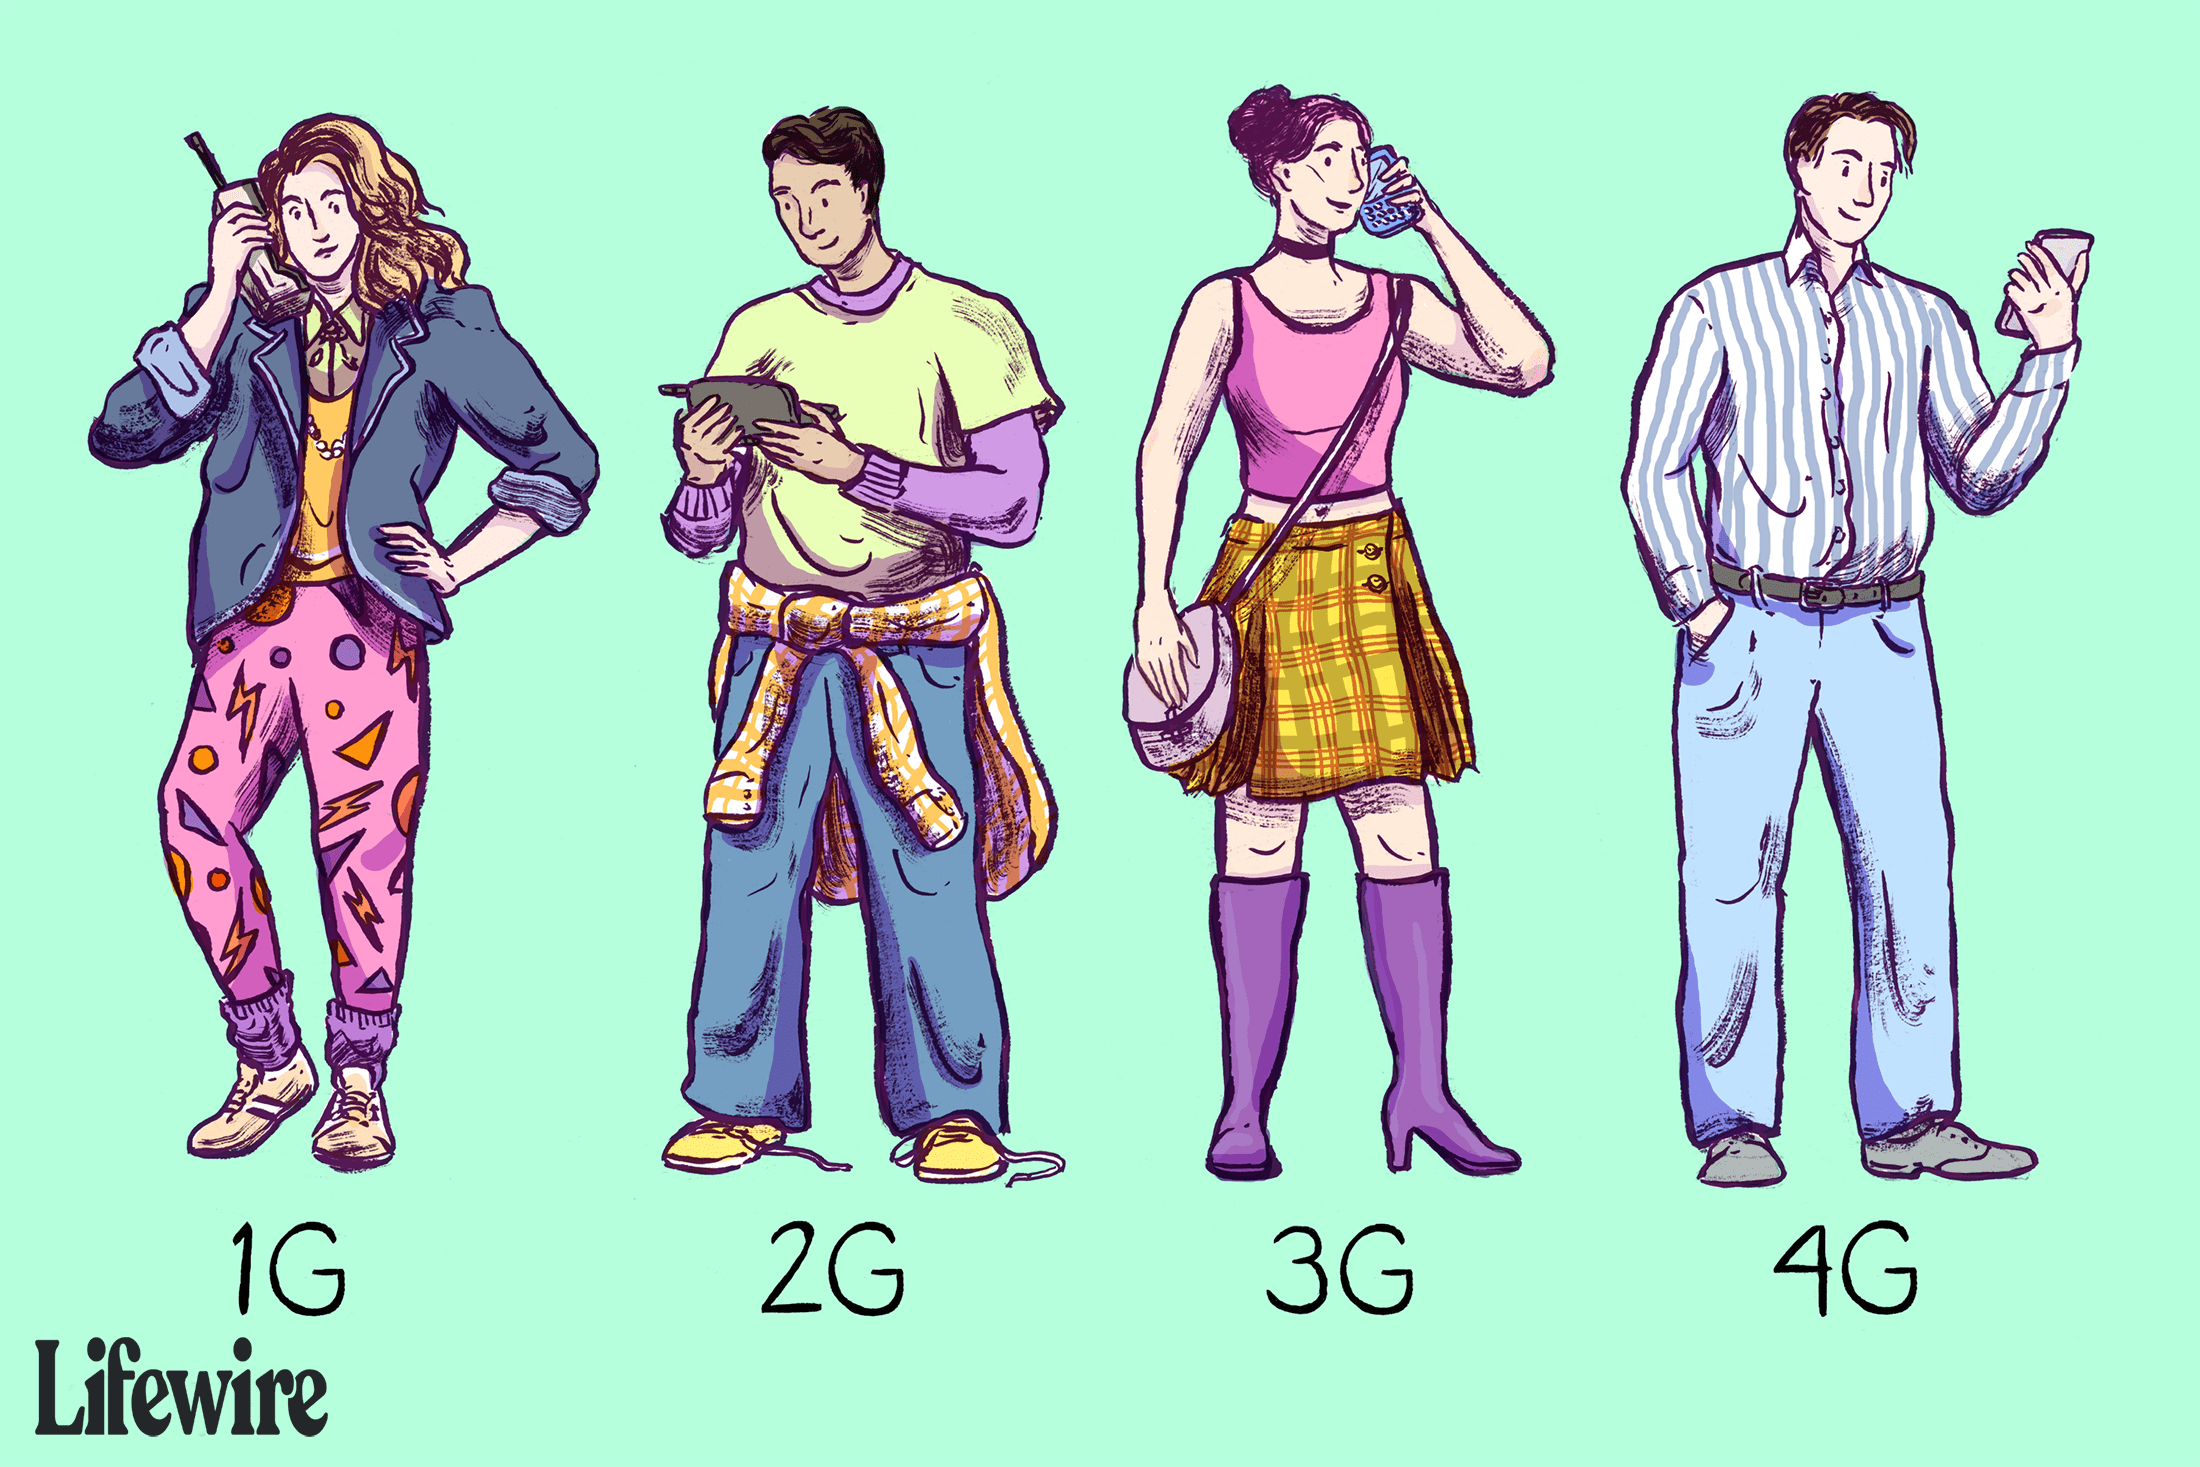 Illustration of 1G - 4G phones in the hands of era-appropriate fashion.